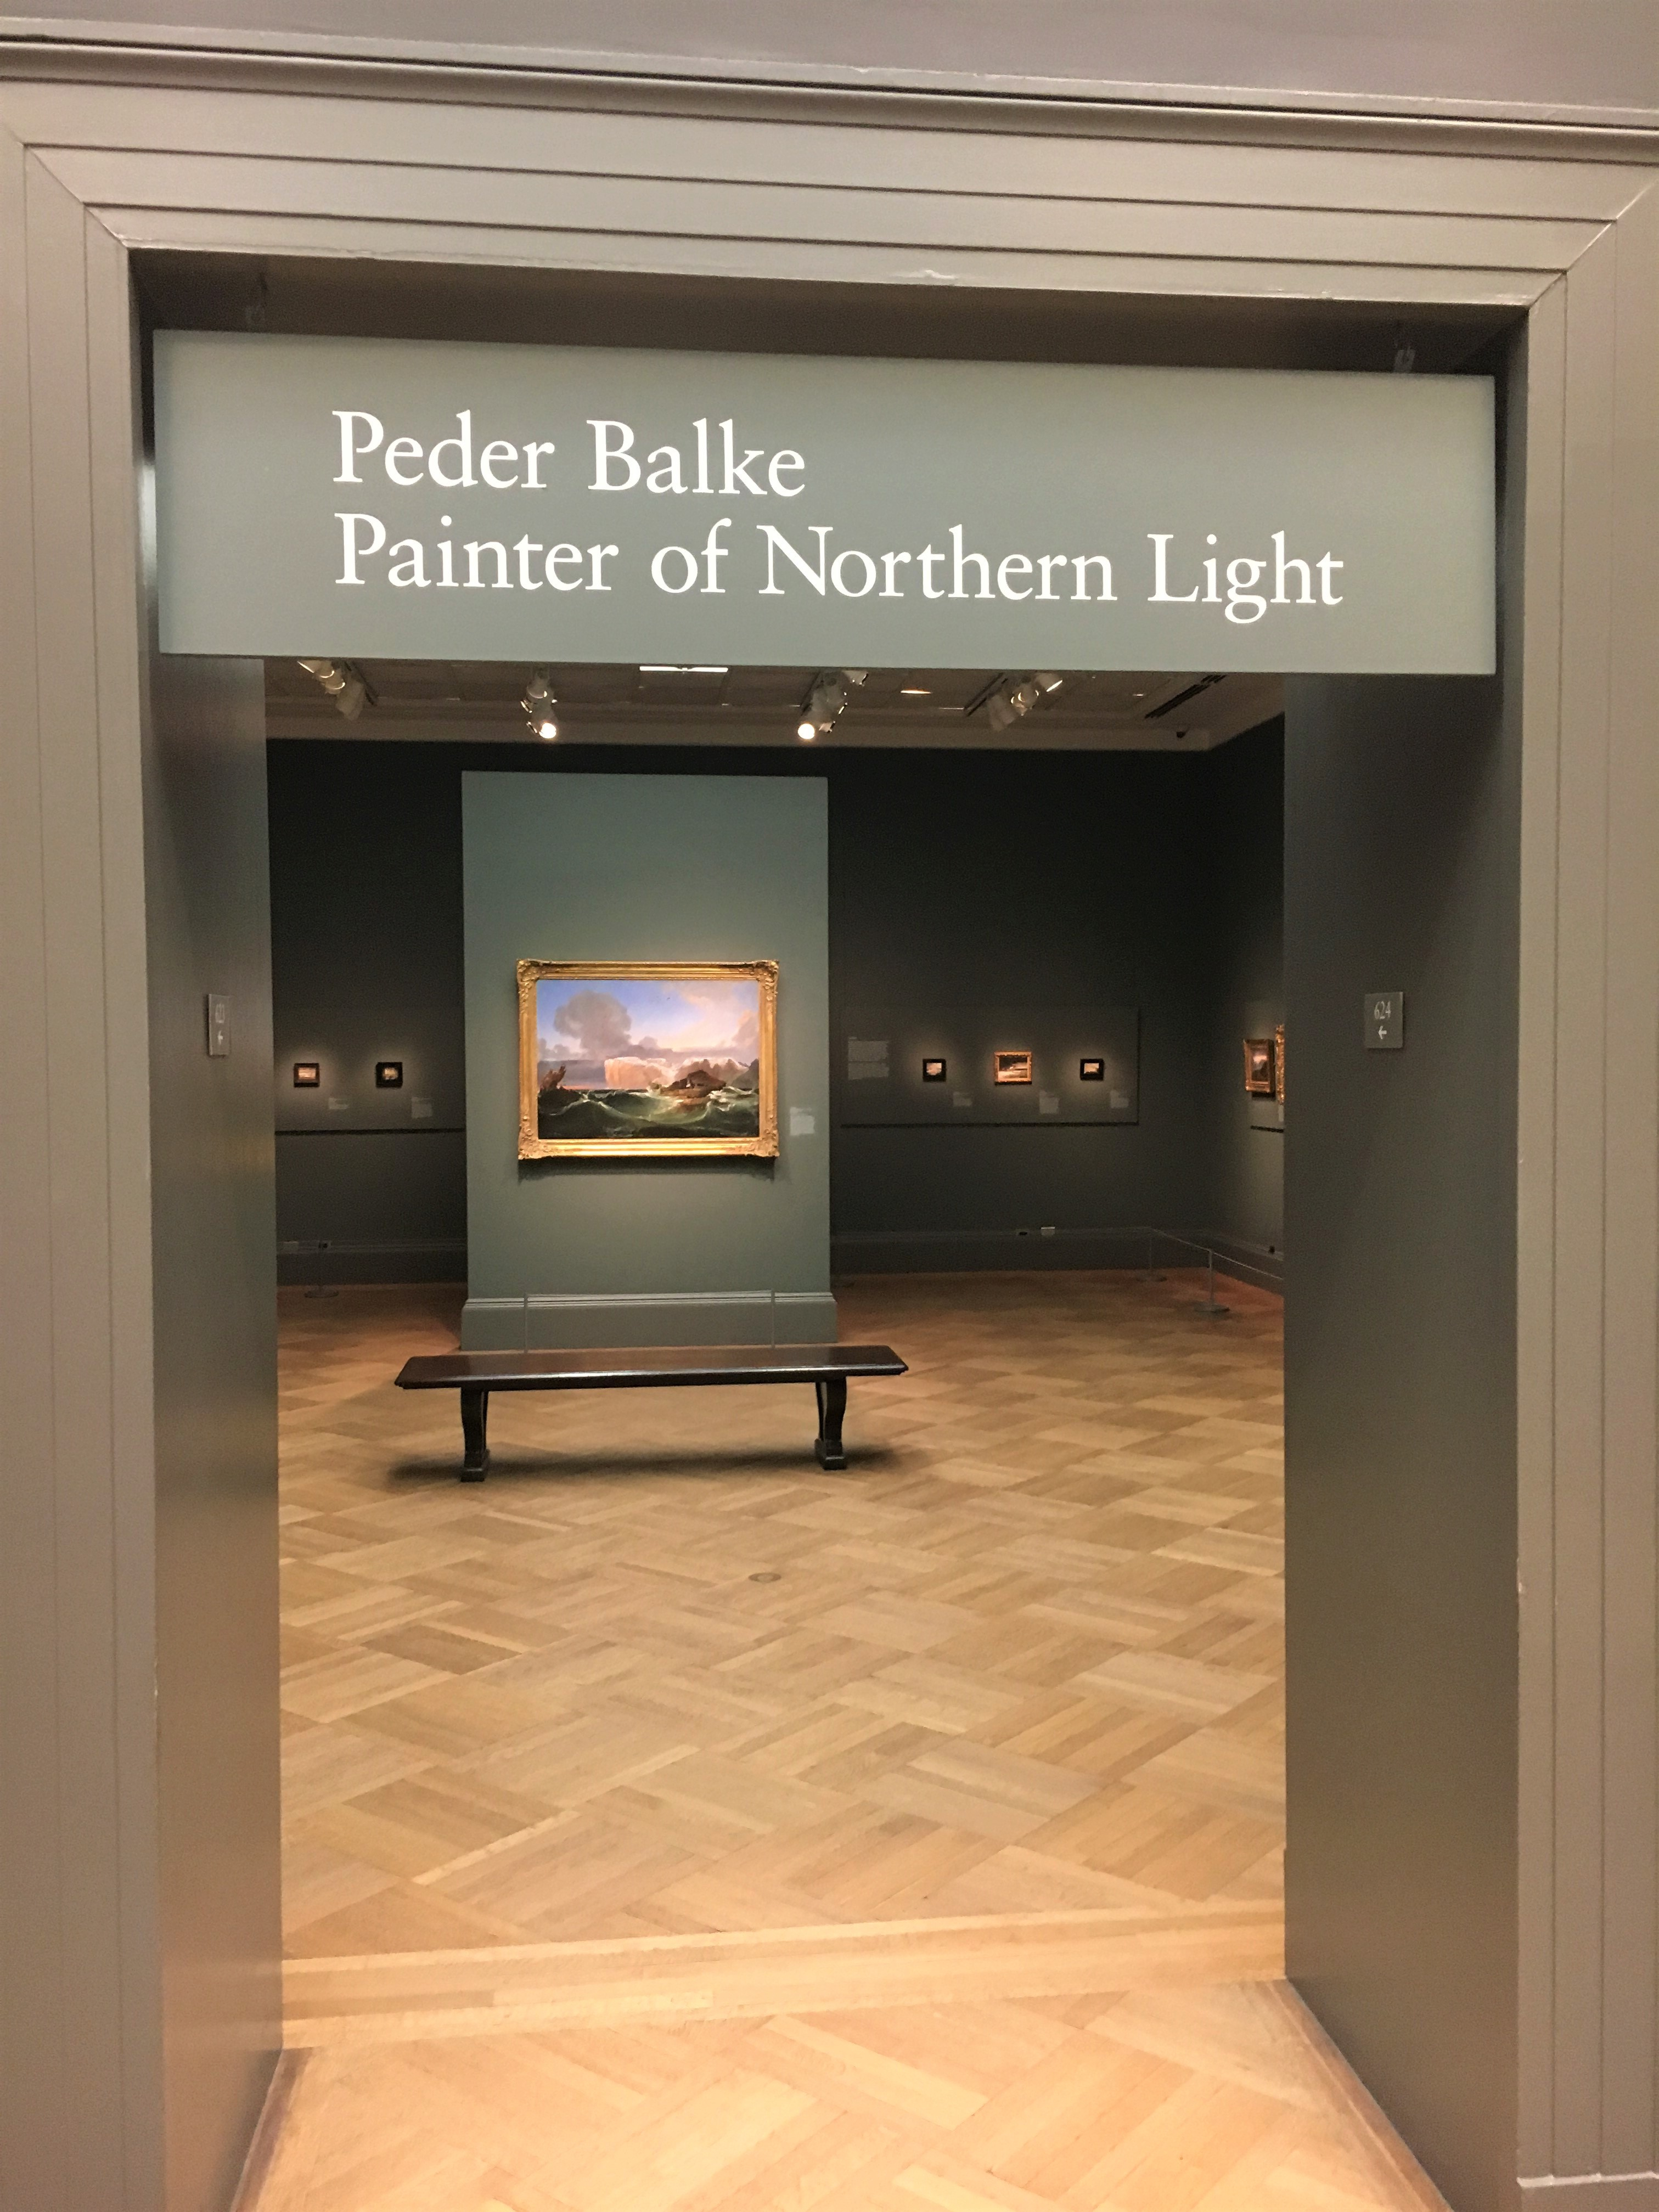 Peder Balke Painter of the Northern Light at The Met, NY